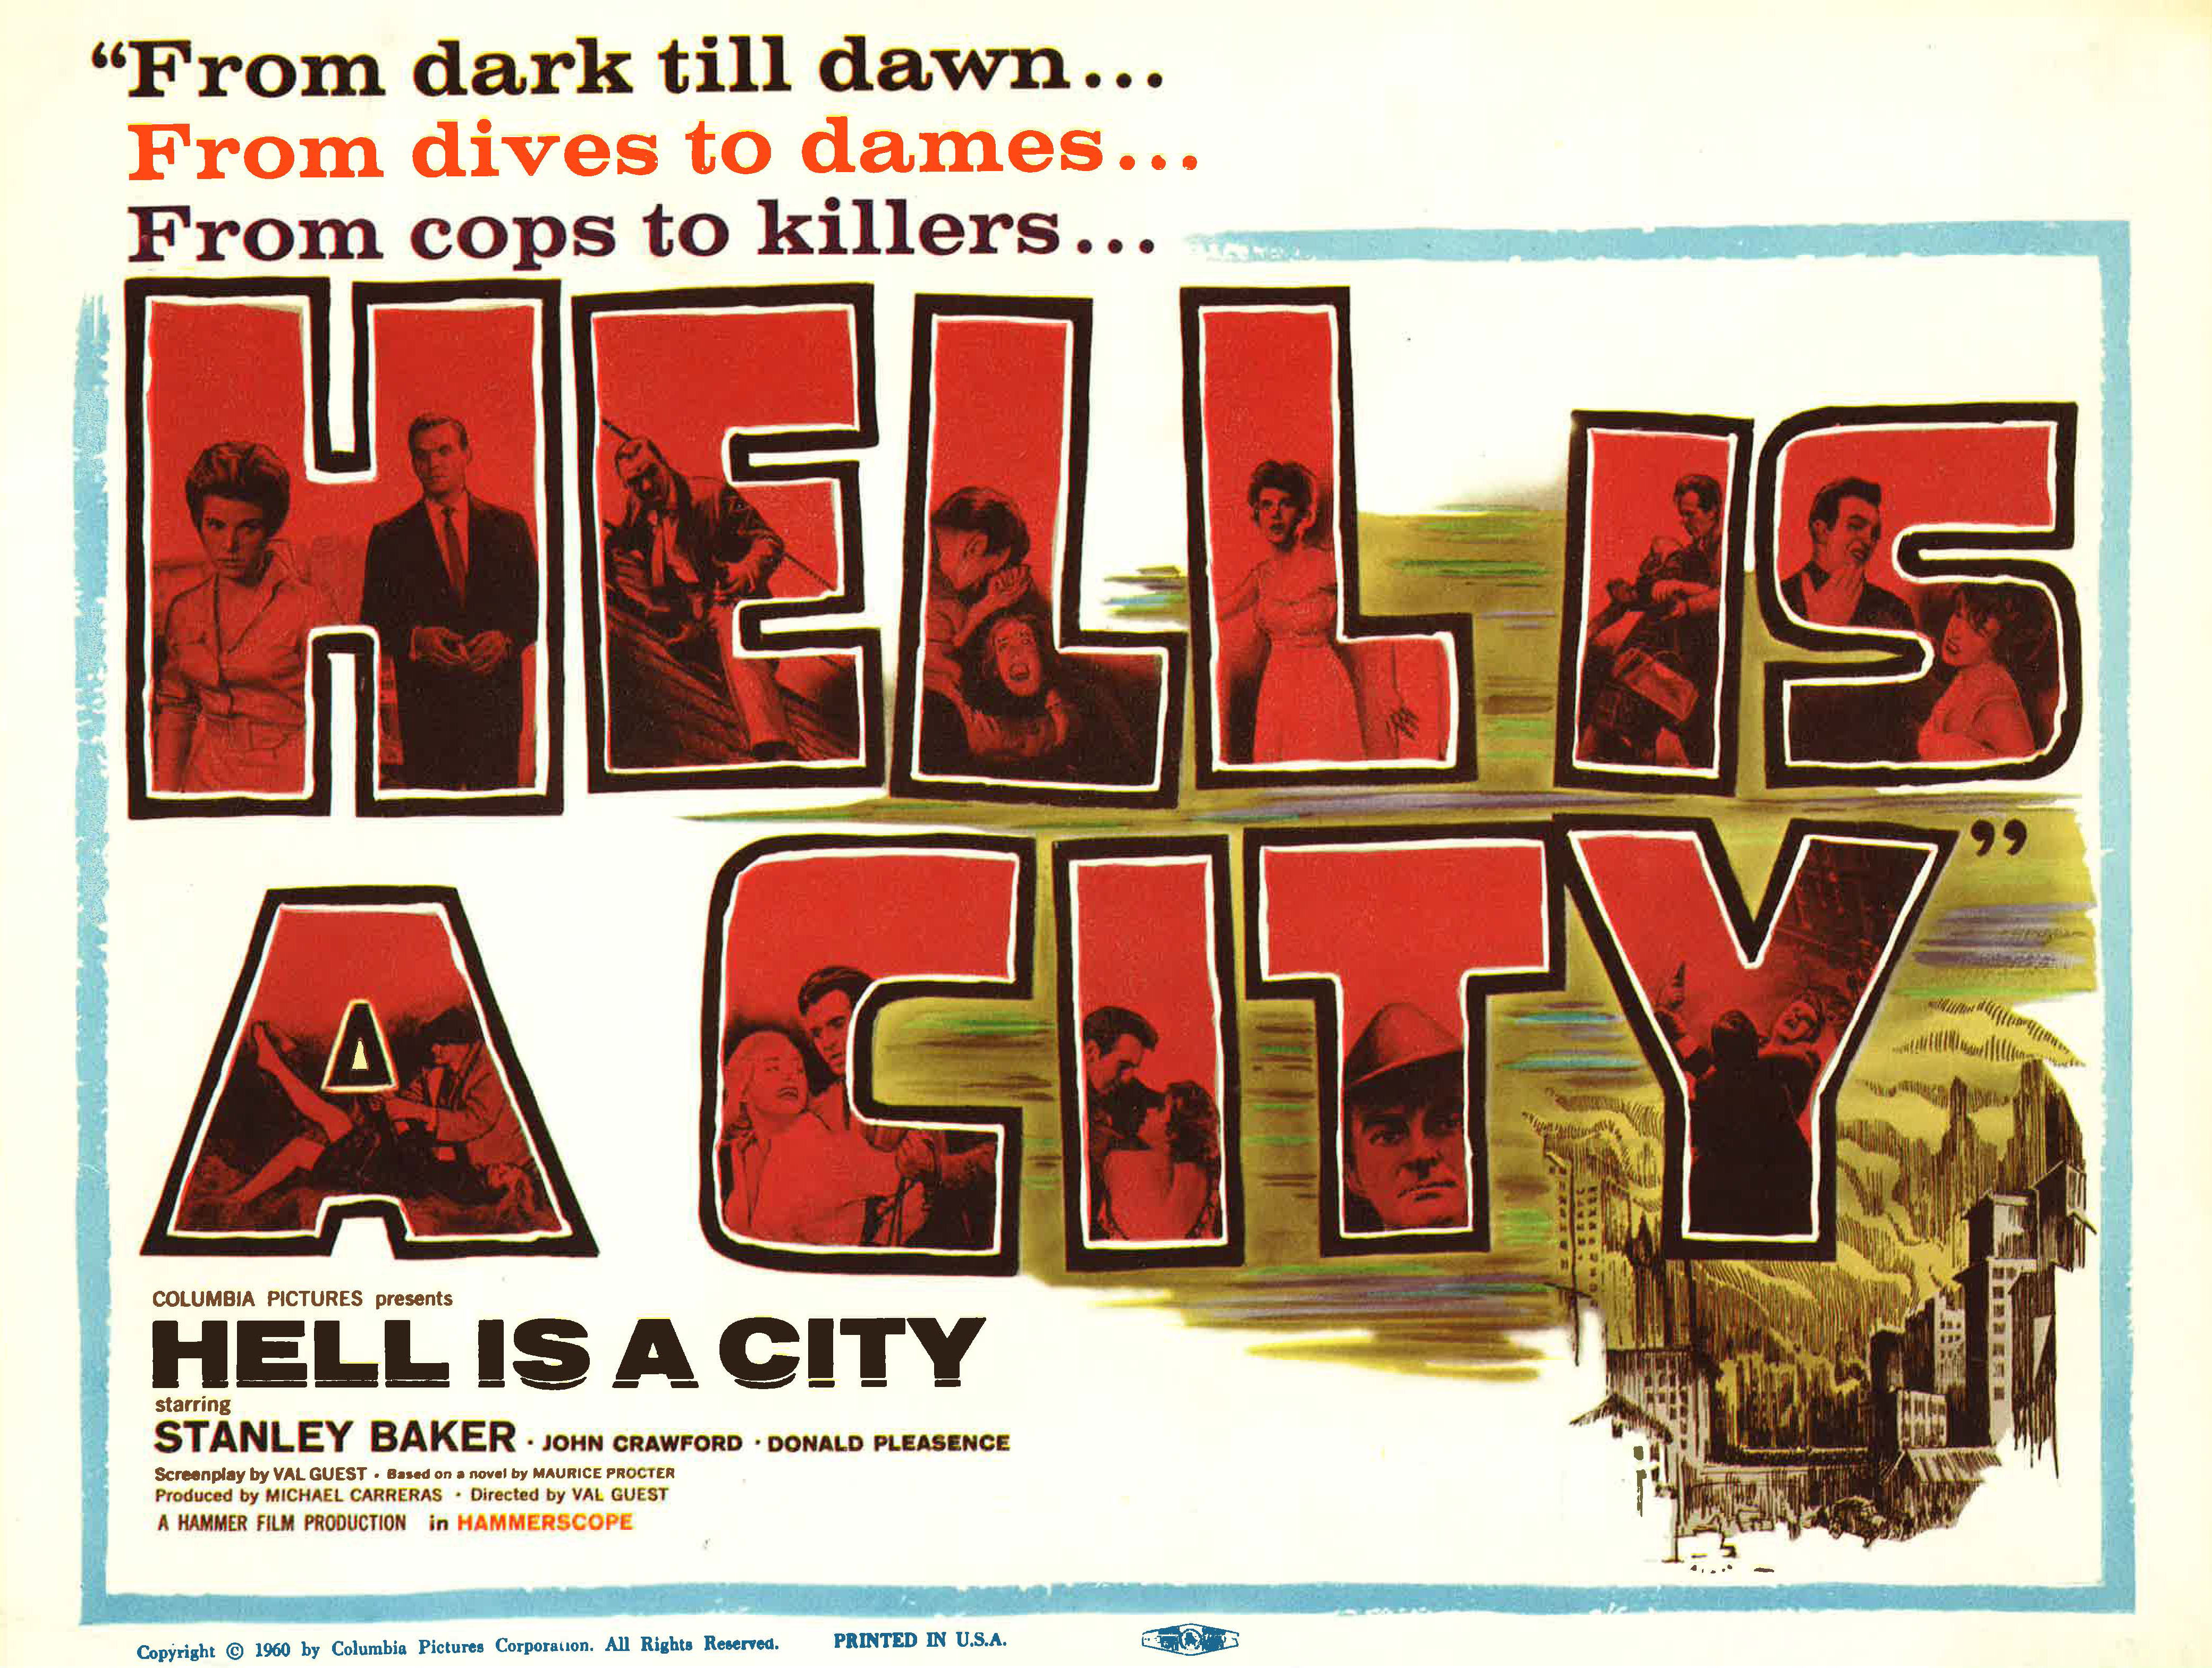 image 006 hell is a city lobby cards-v2